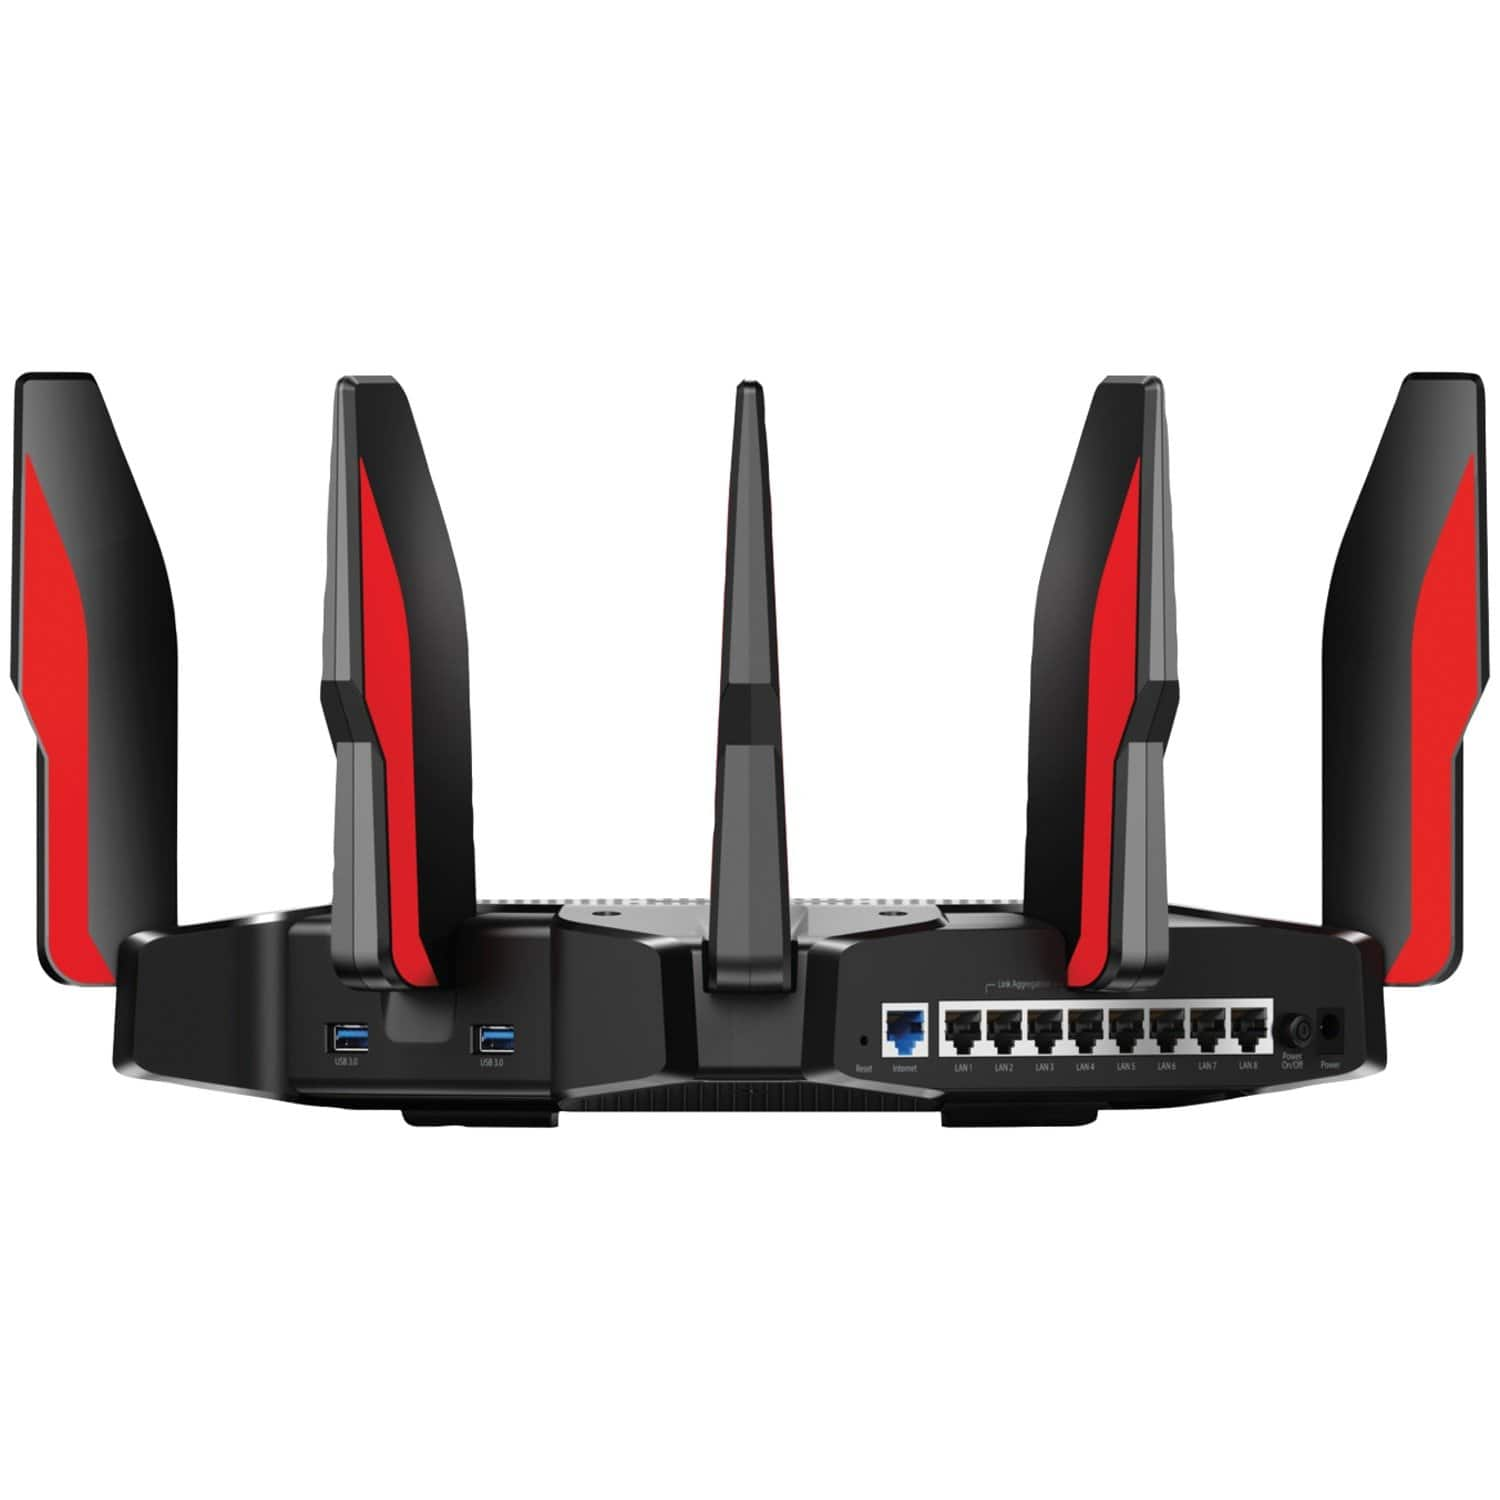 TP-Link AC5400 Tri Band Gaming Router – MU-MIMO, 1.8GHz Quad-Core 64-bit CPU - $219.99 @ Amazon